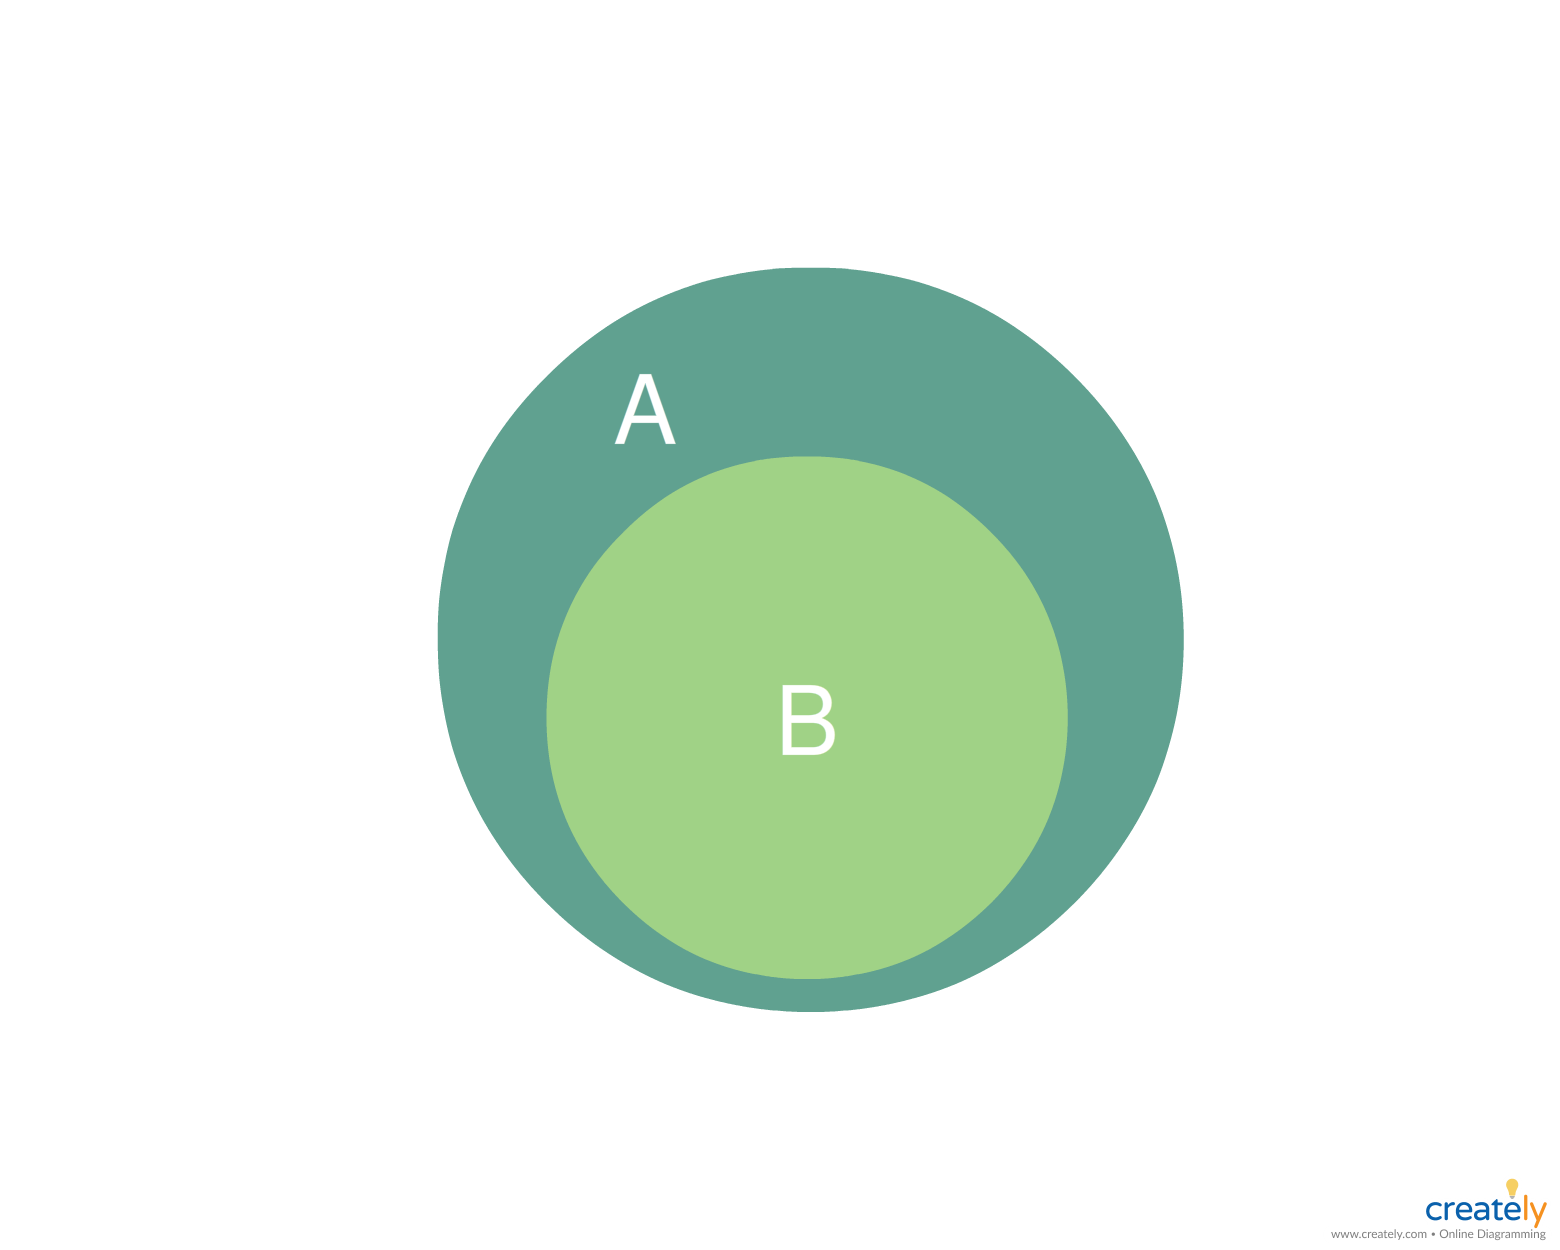 Venn diagram example showing a is a proper subset of b and venn diagram example showing a is a proper subset of b and conversely b is a proper super set of a you can use this as a template by clicking on the ccuart Image collections